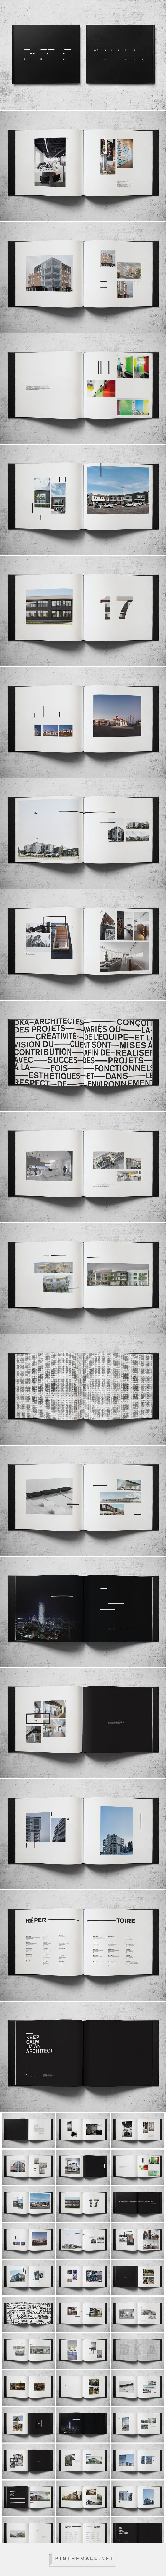 DKA Architectes Volume 1 by Charles Daoud